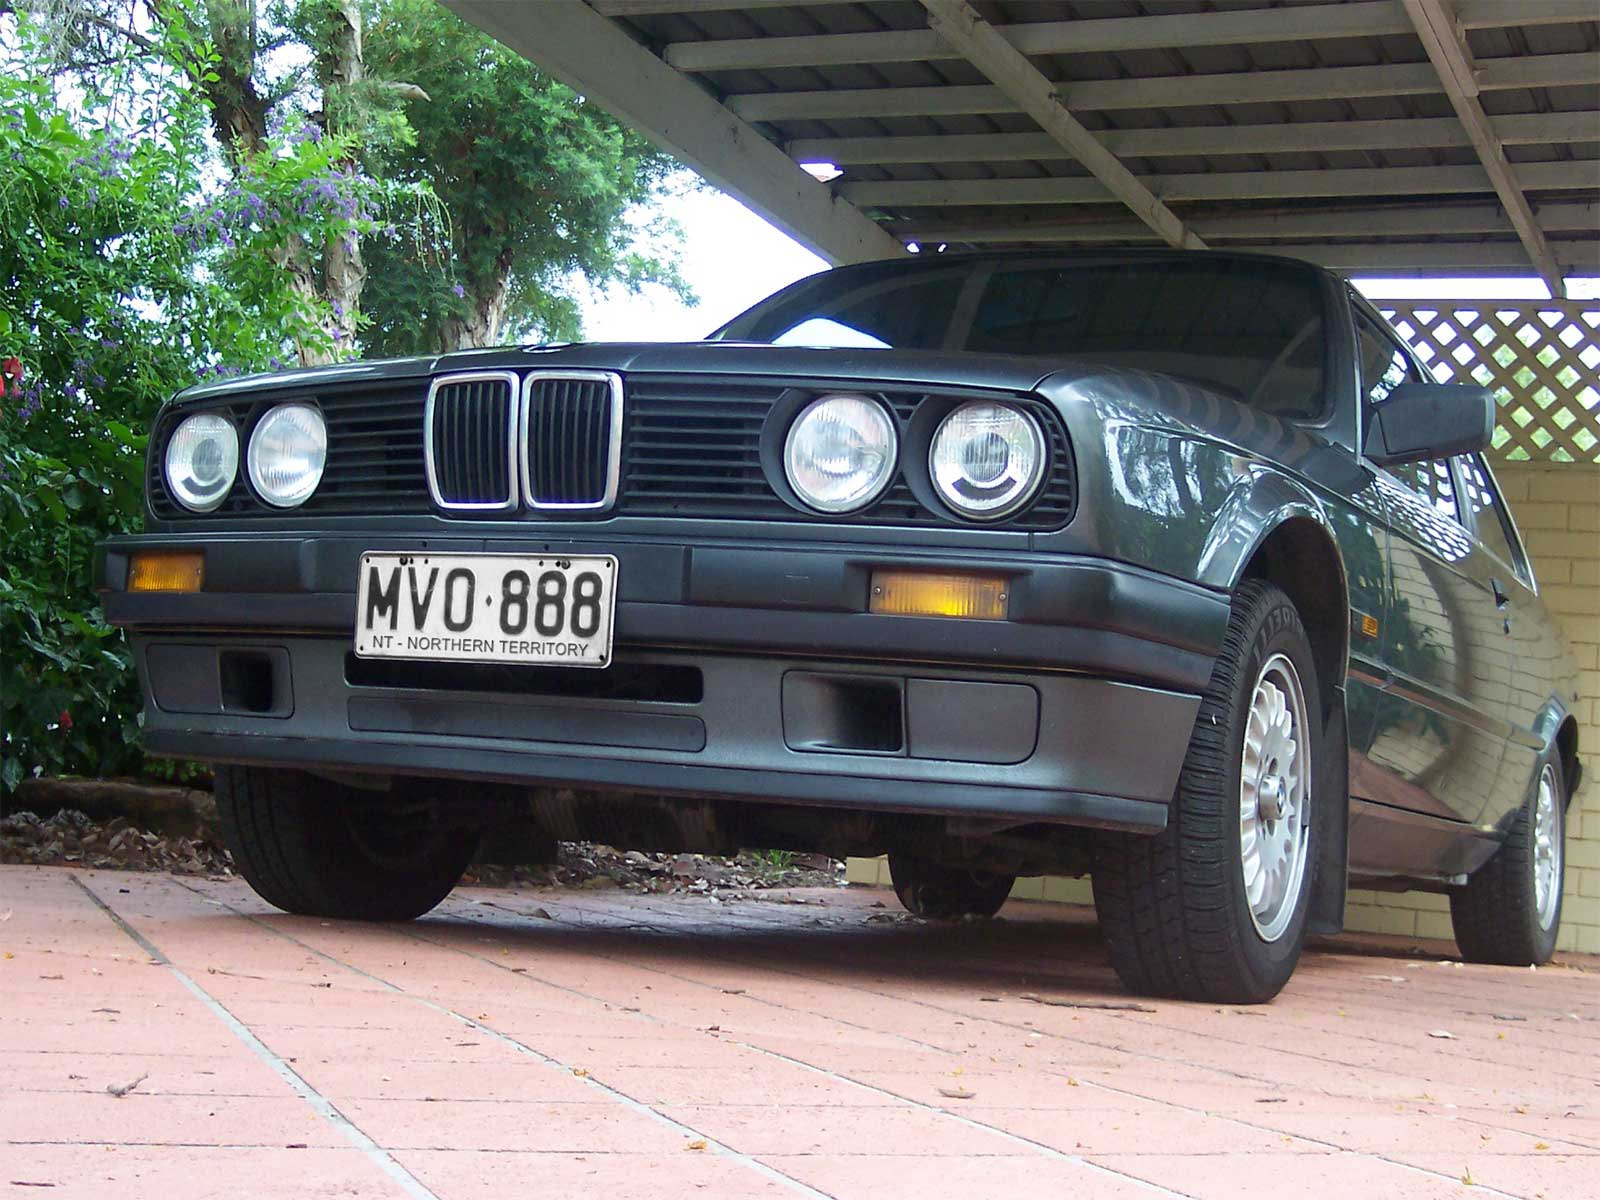 unofficialbmw :: view topic - which valence?